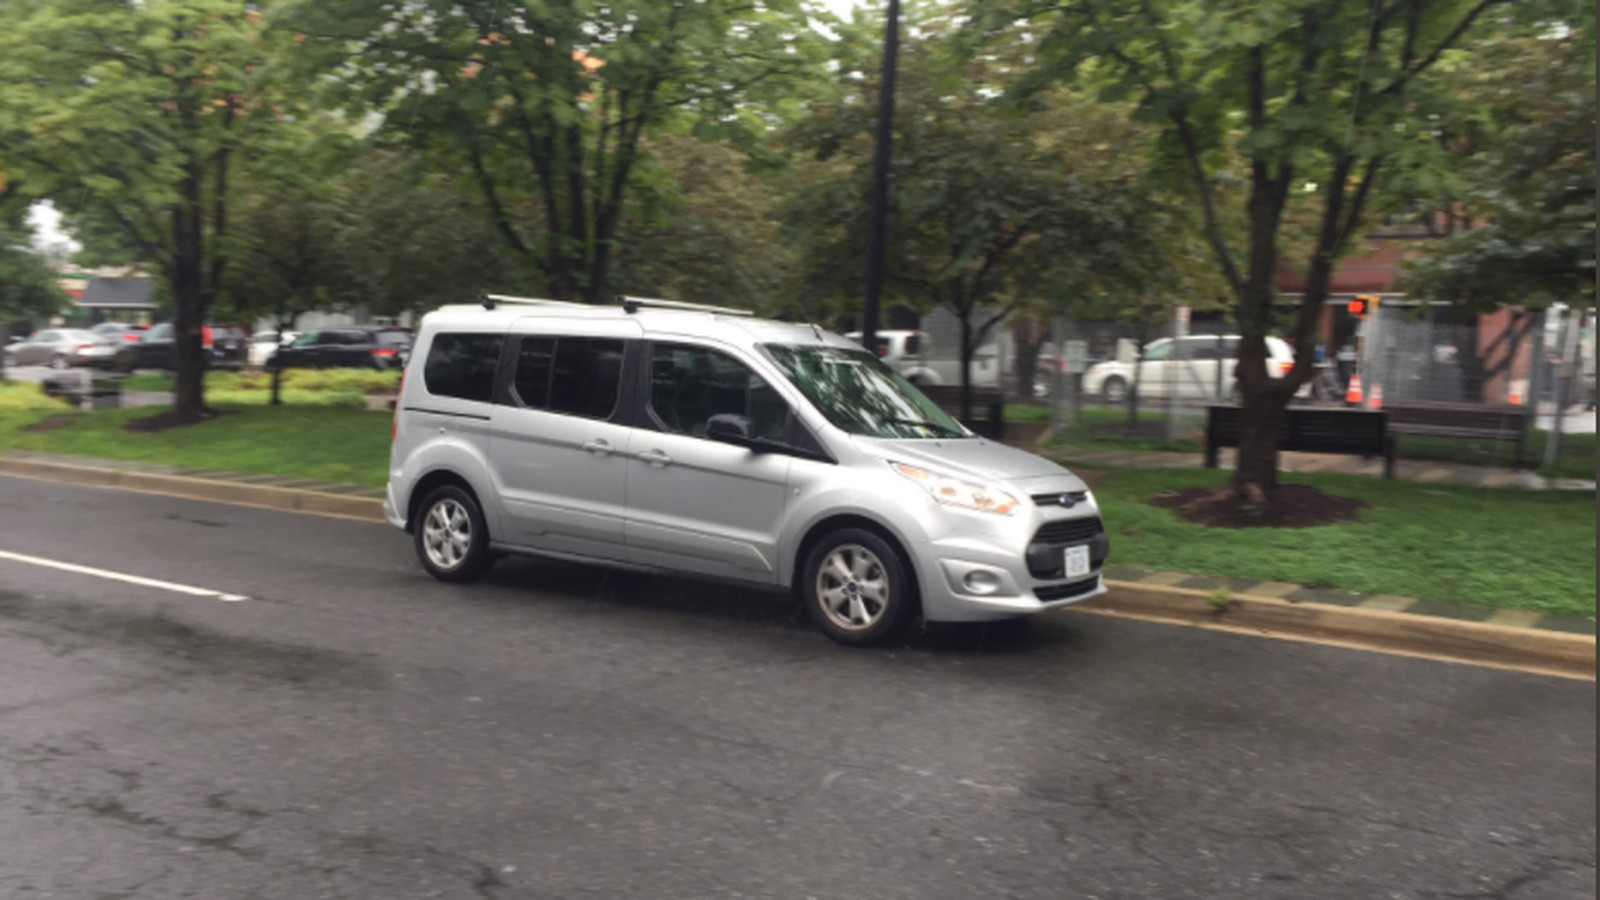 Mysterious 'driverless' van spotted in Virginia had a human driver hidden in the car seat